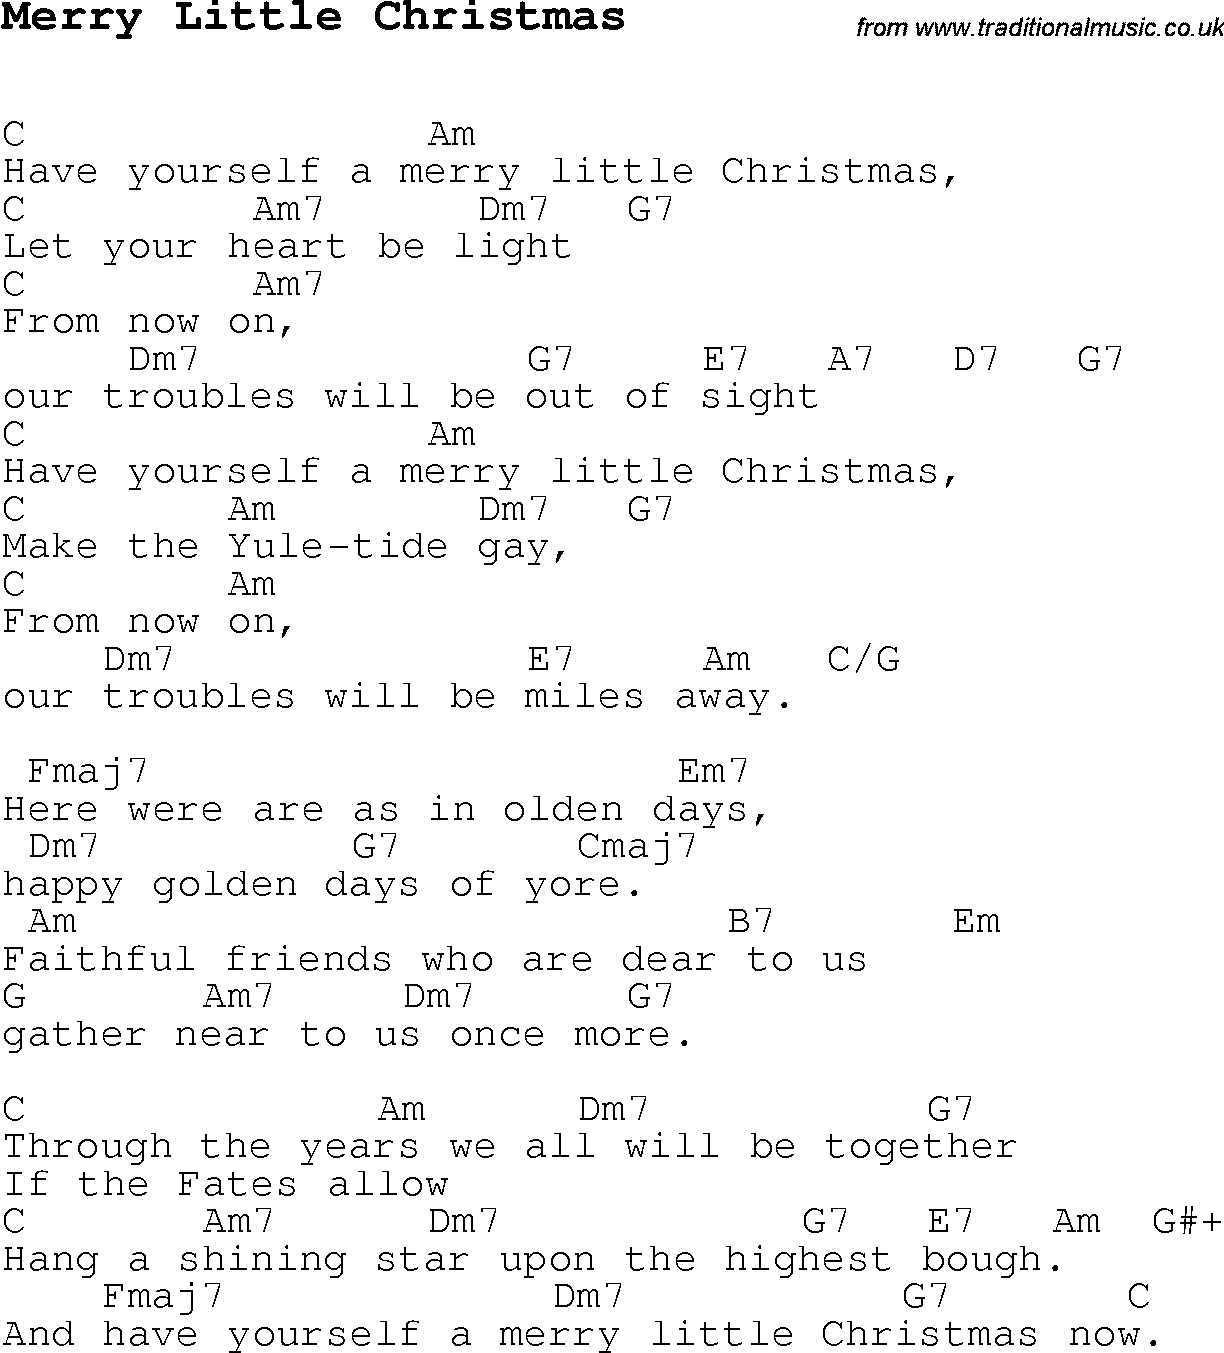 Have Yourself A Merry Little Christmas Chords Christmas Carolsong Lyrics With Chords For Merry Little Christmas